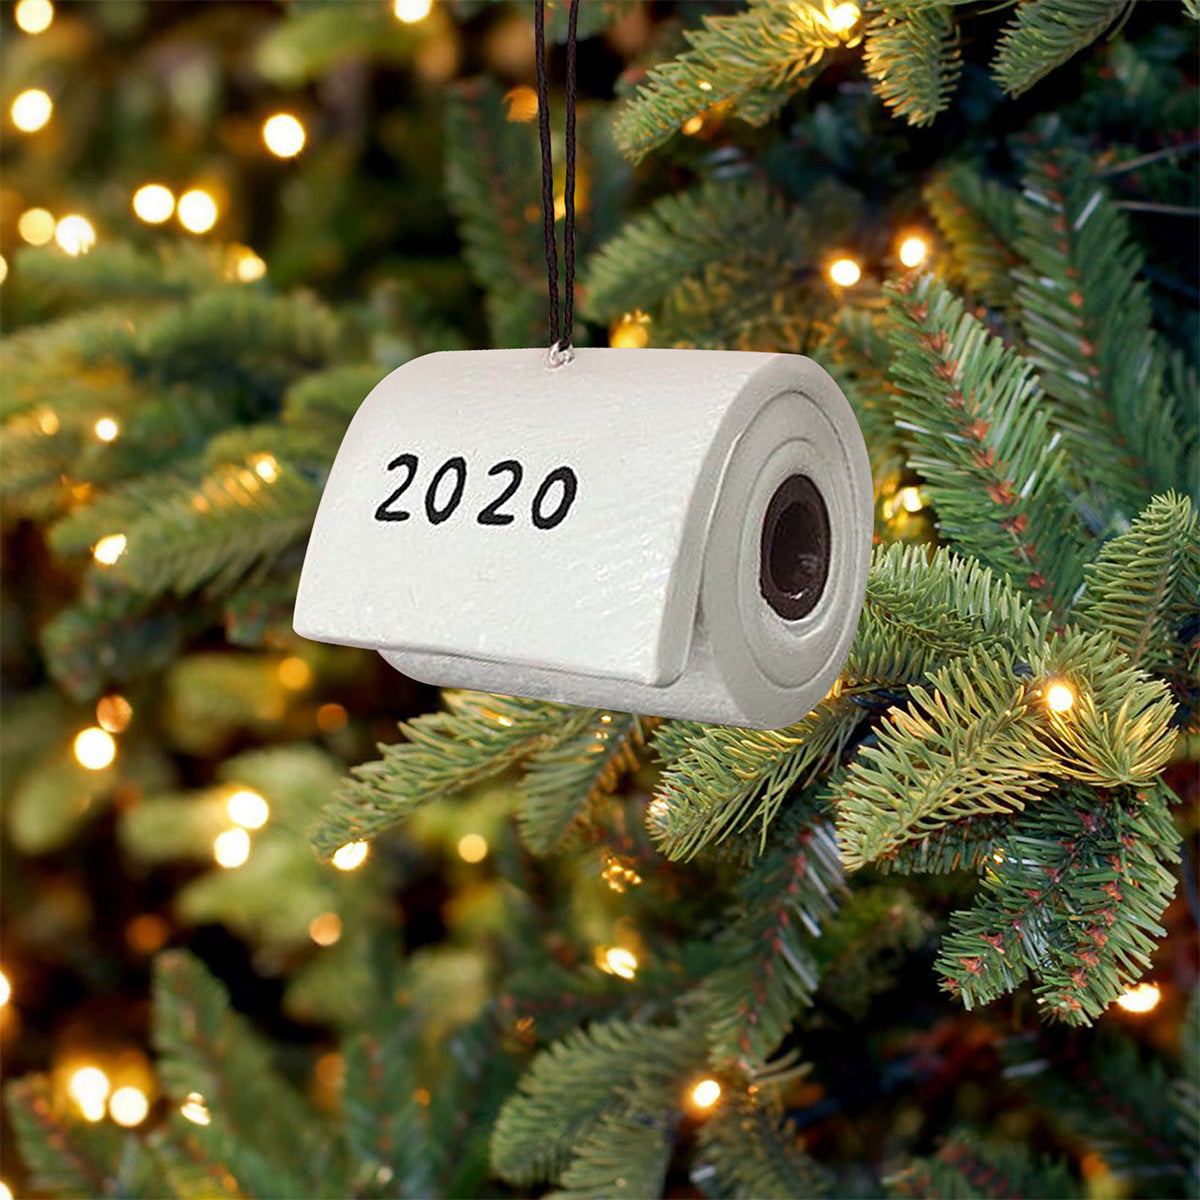 Toilet Paper Crisis 2020 Ornament - Funny Christmas Ornament